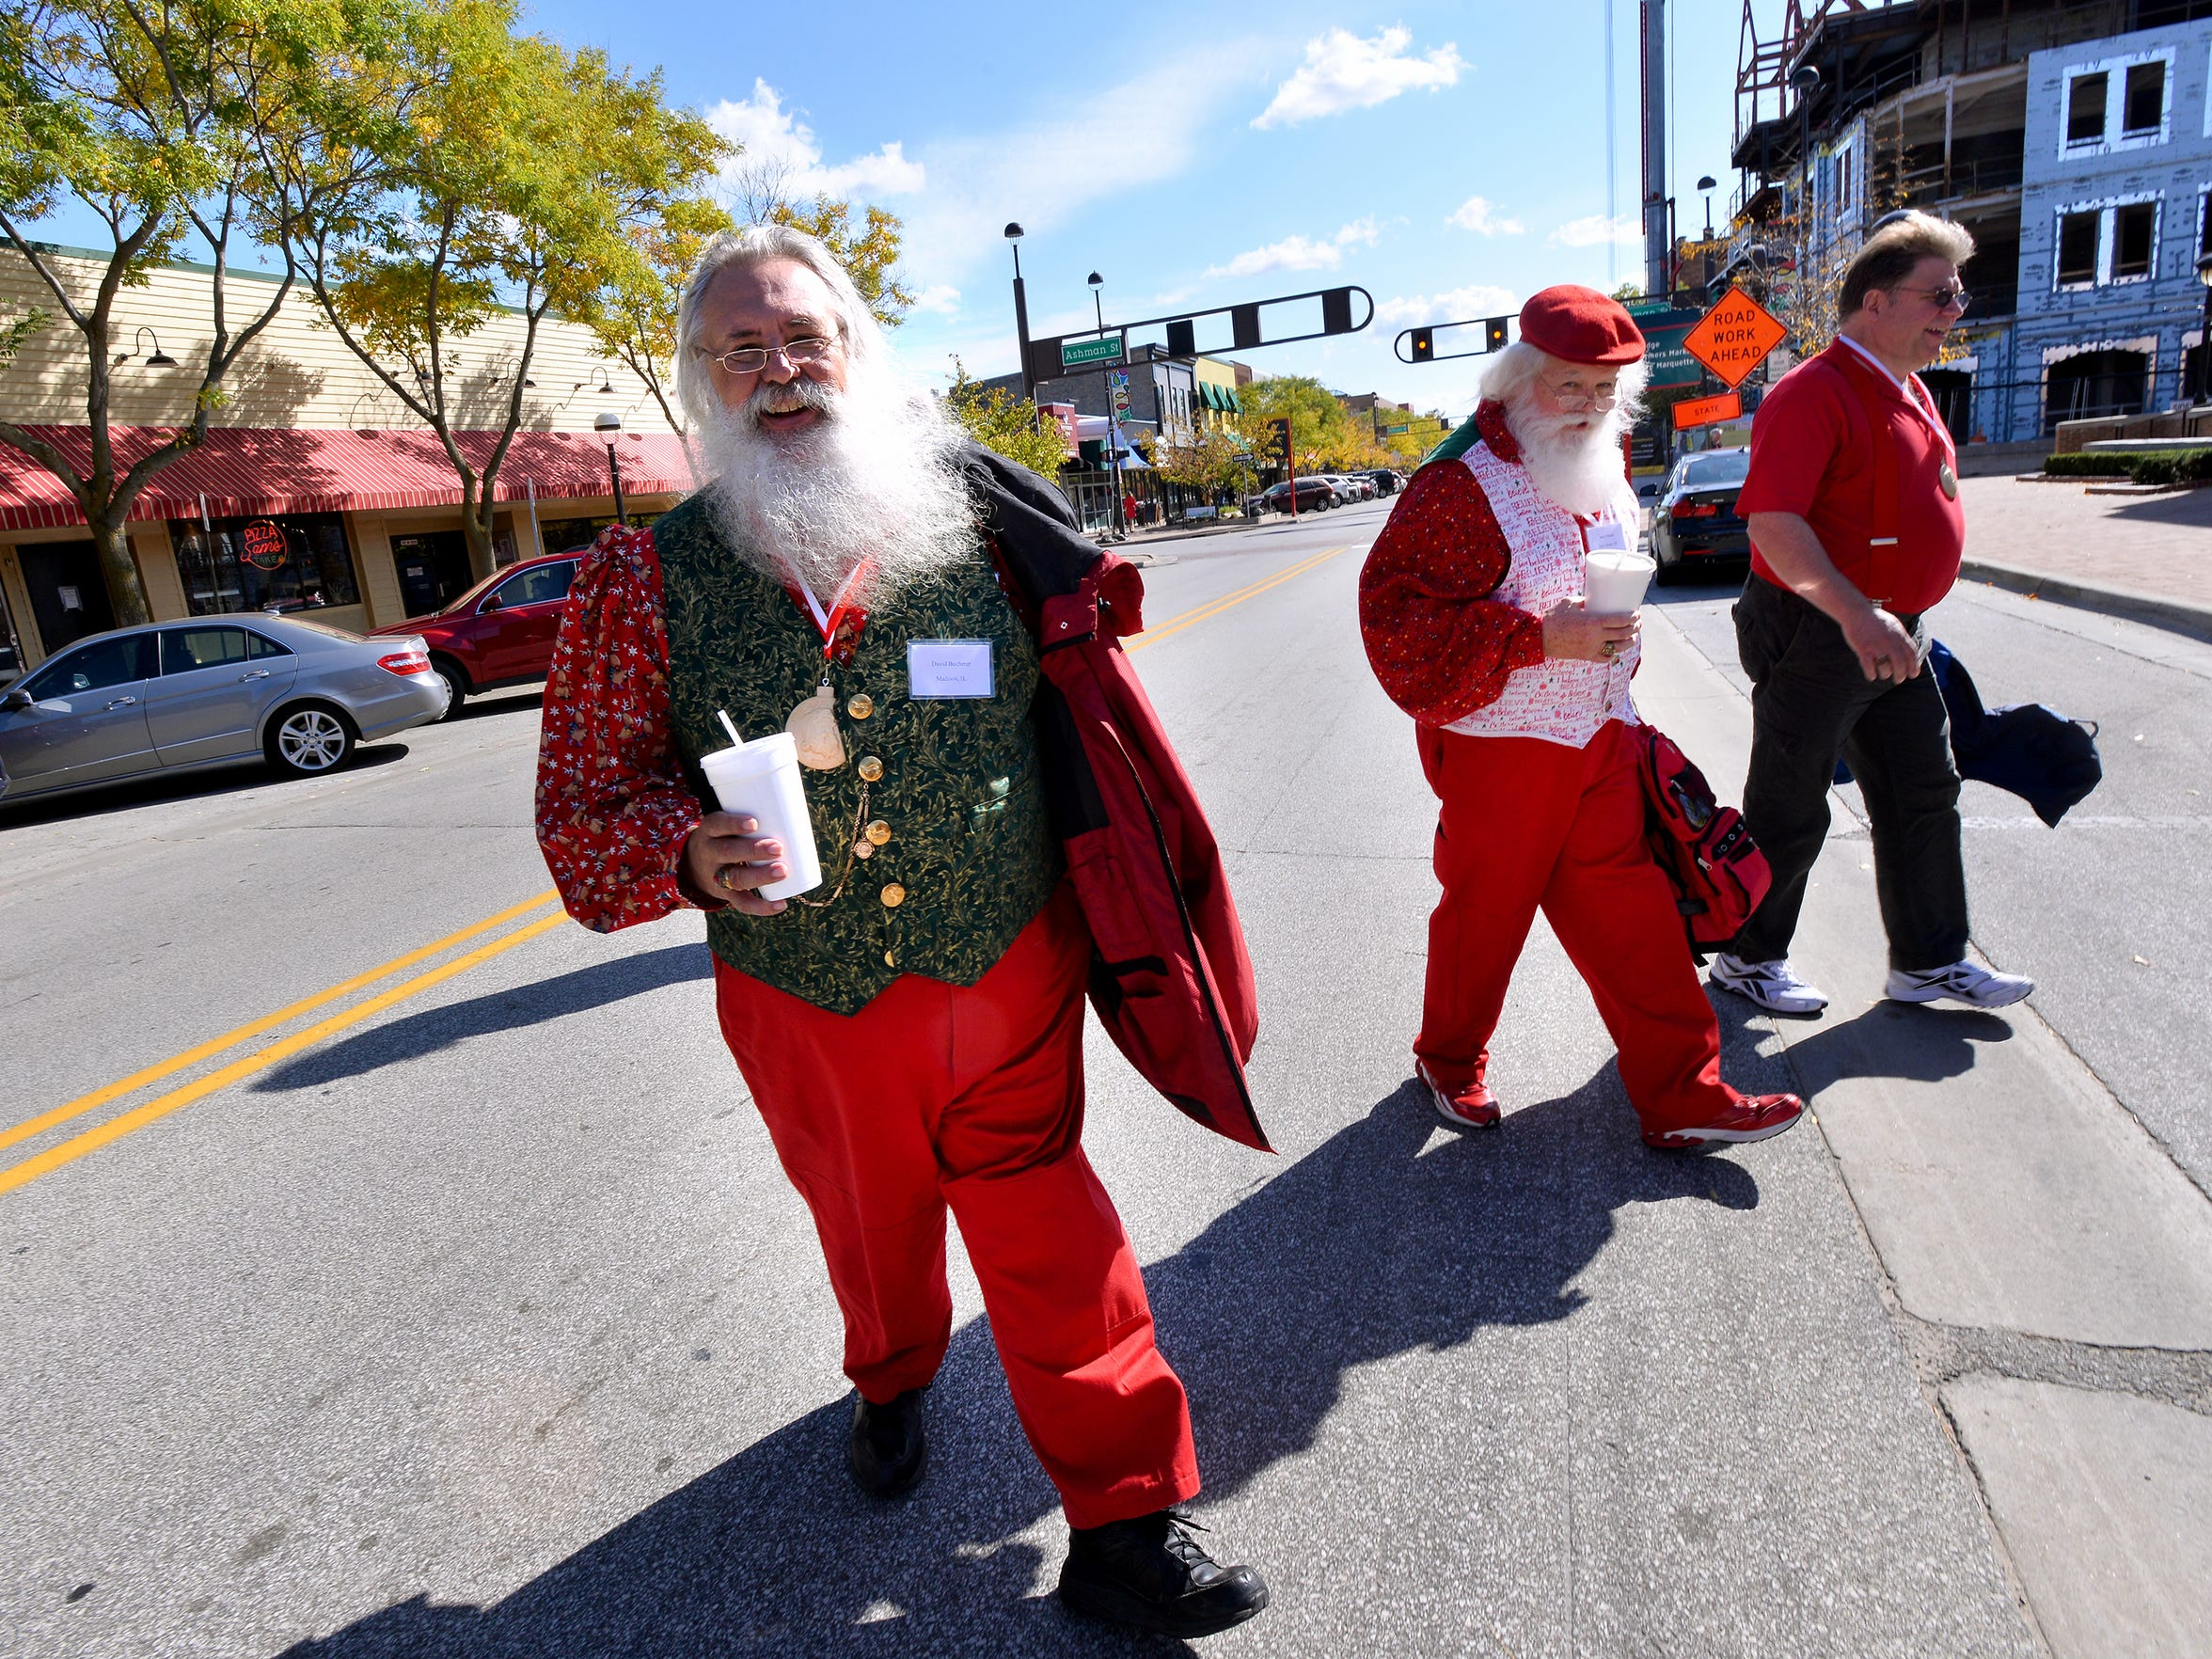 The streets of Midland, MI, are full of Santas for